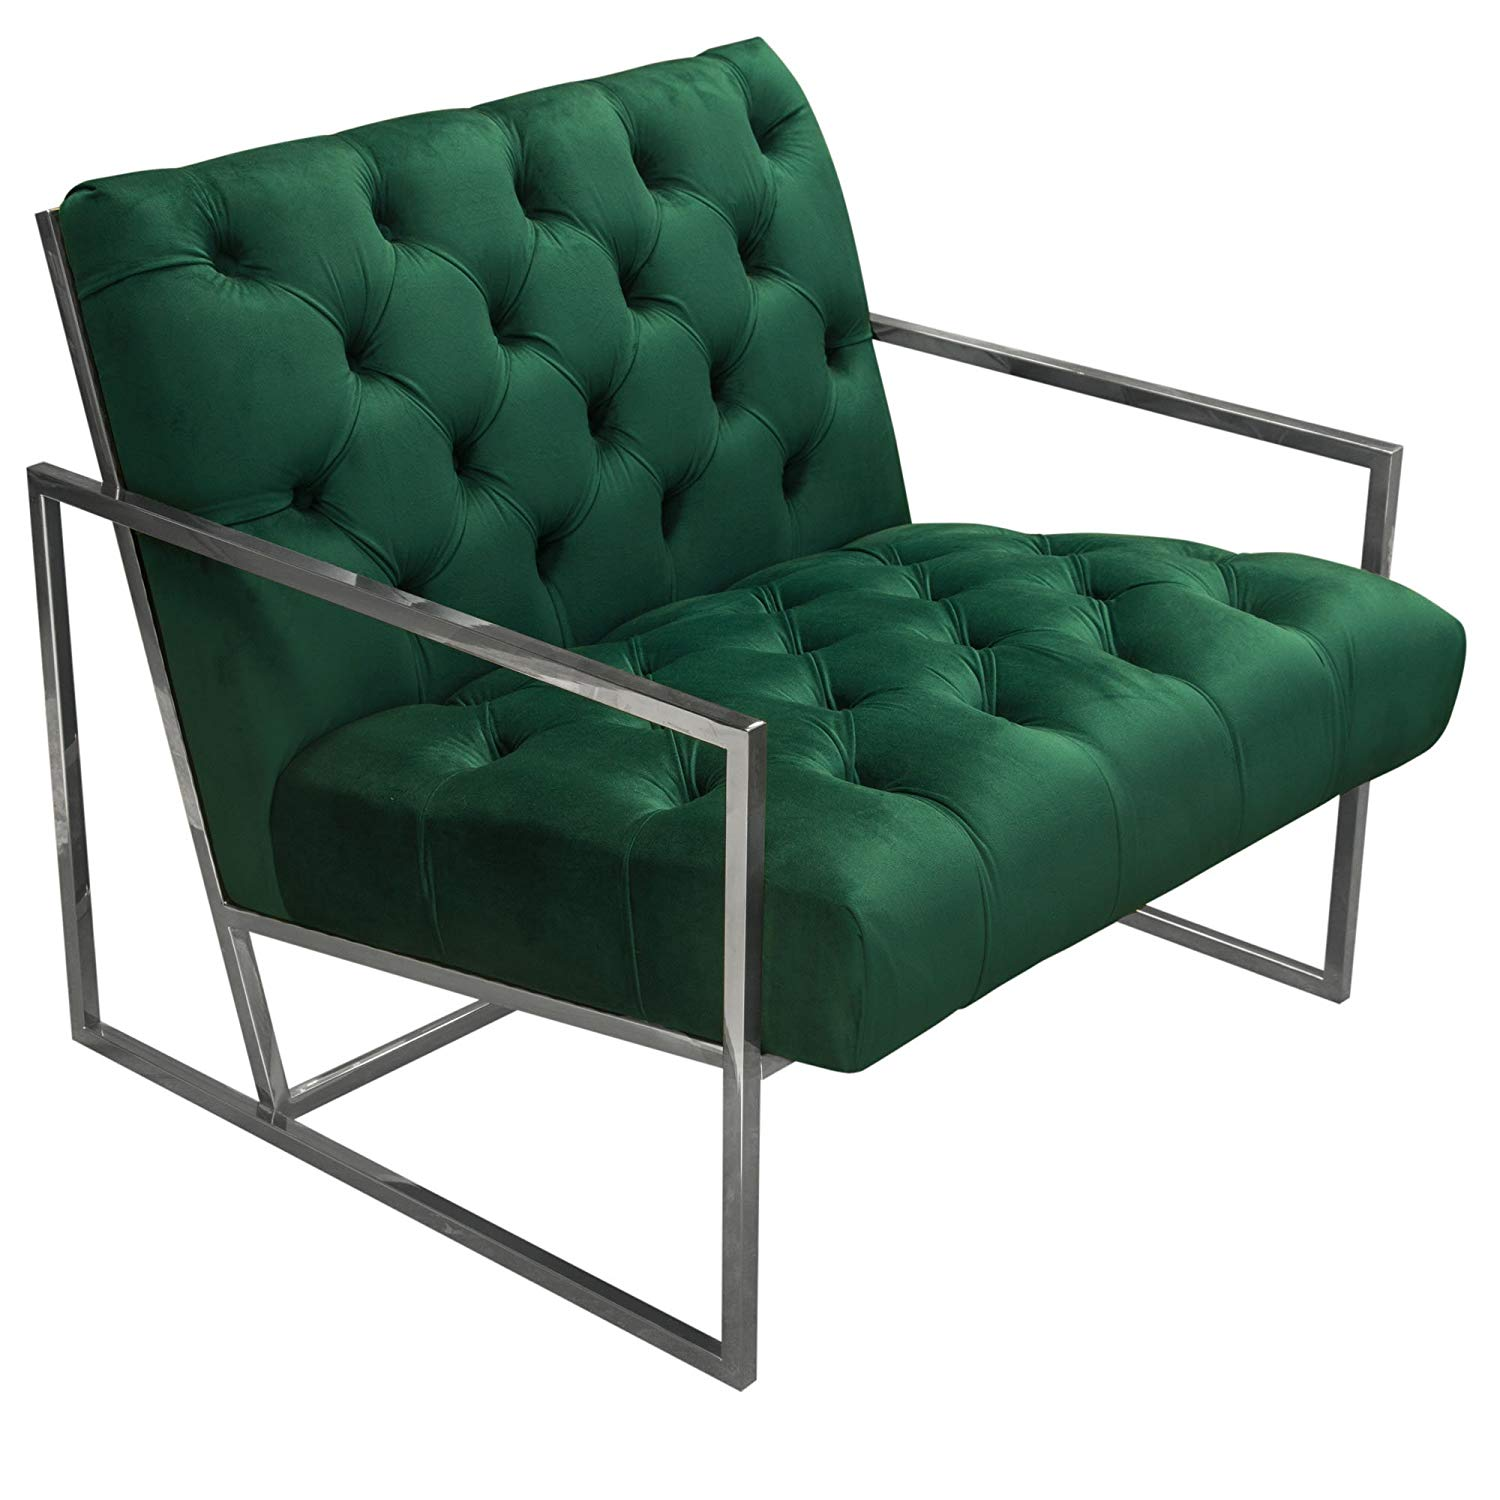 Dillard Furniture: Dillard Chair (Green) • Lux Lounge EFR (888) 247-4411